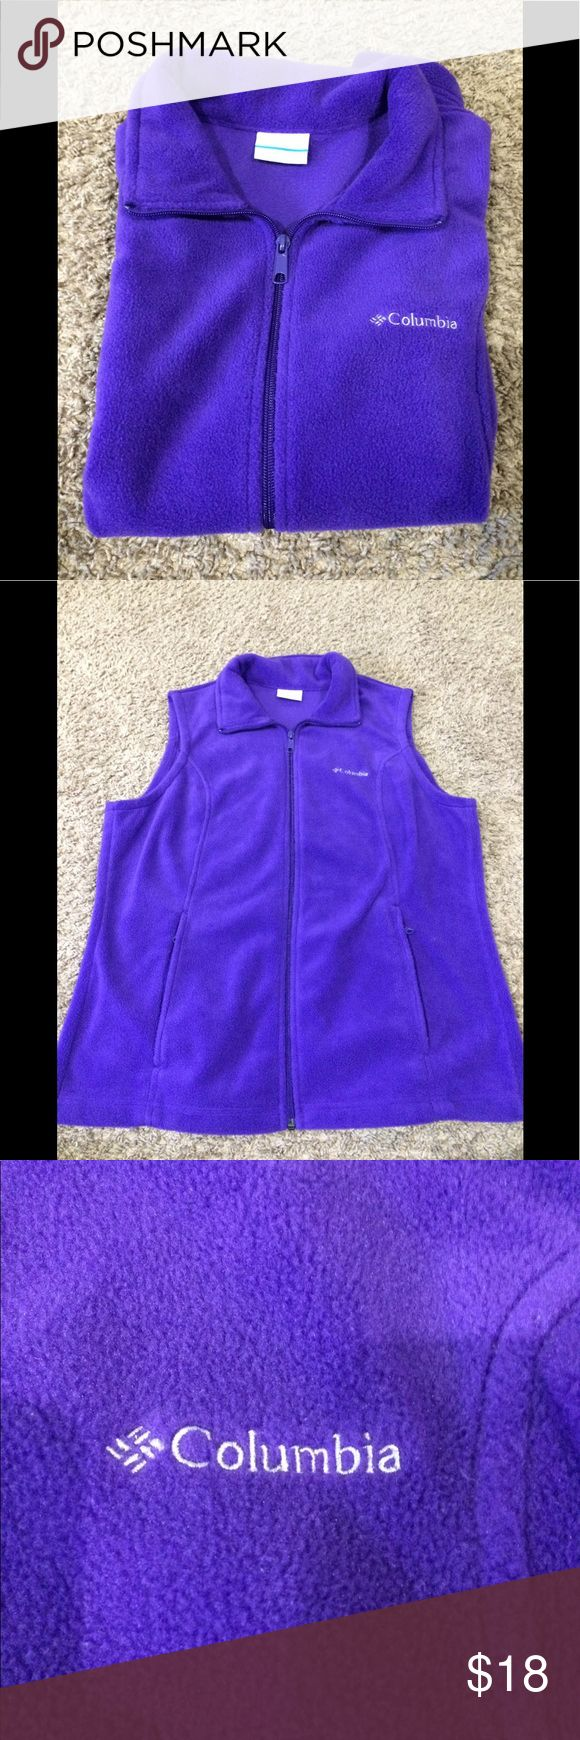 Columbia Women Purple Vest 1 Day Sale Only 9/21/17 Preowned Columbia Women Purple Vest size Large is excellent condition. Don't see any piling on it. The Vest has 2 front zipper pockets Columbia Other